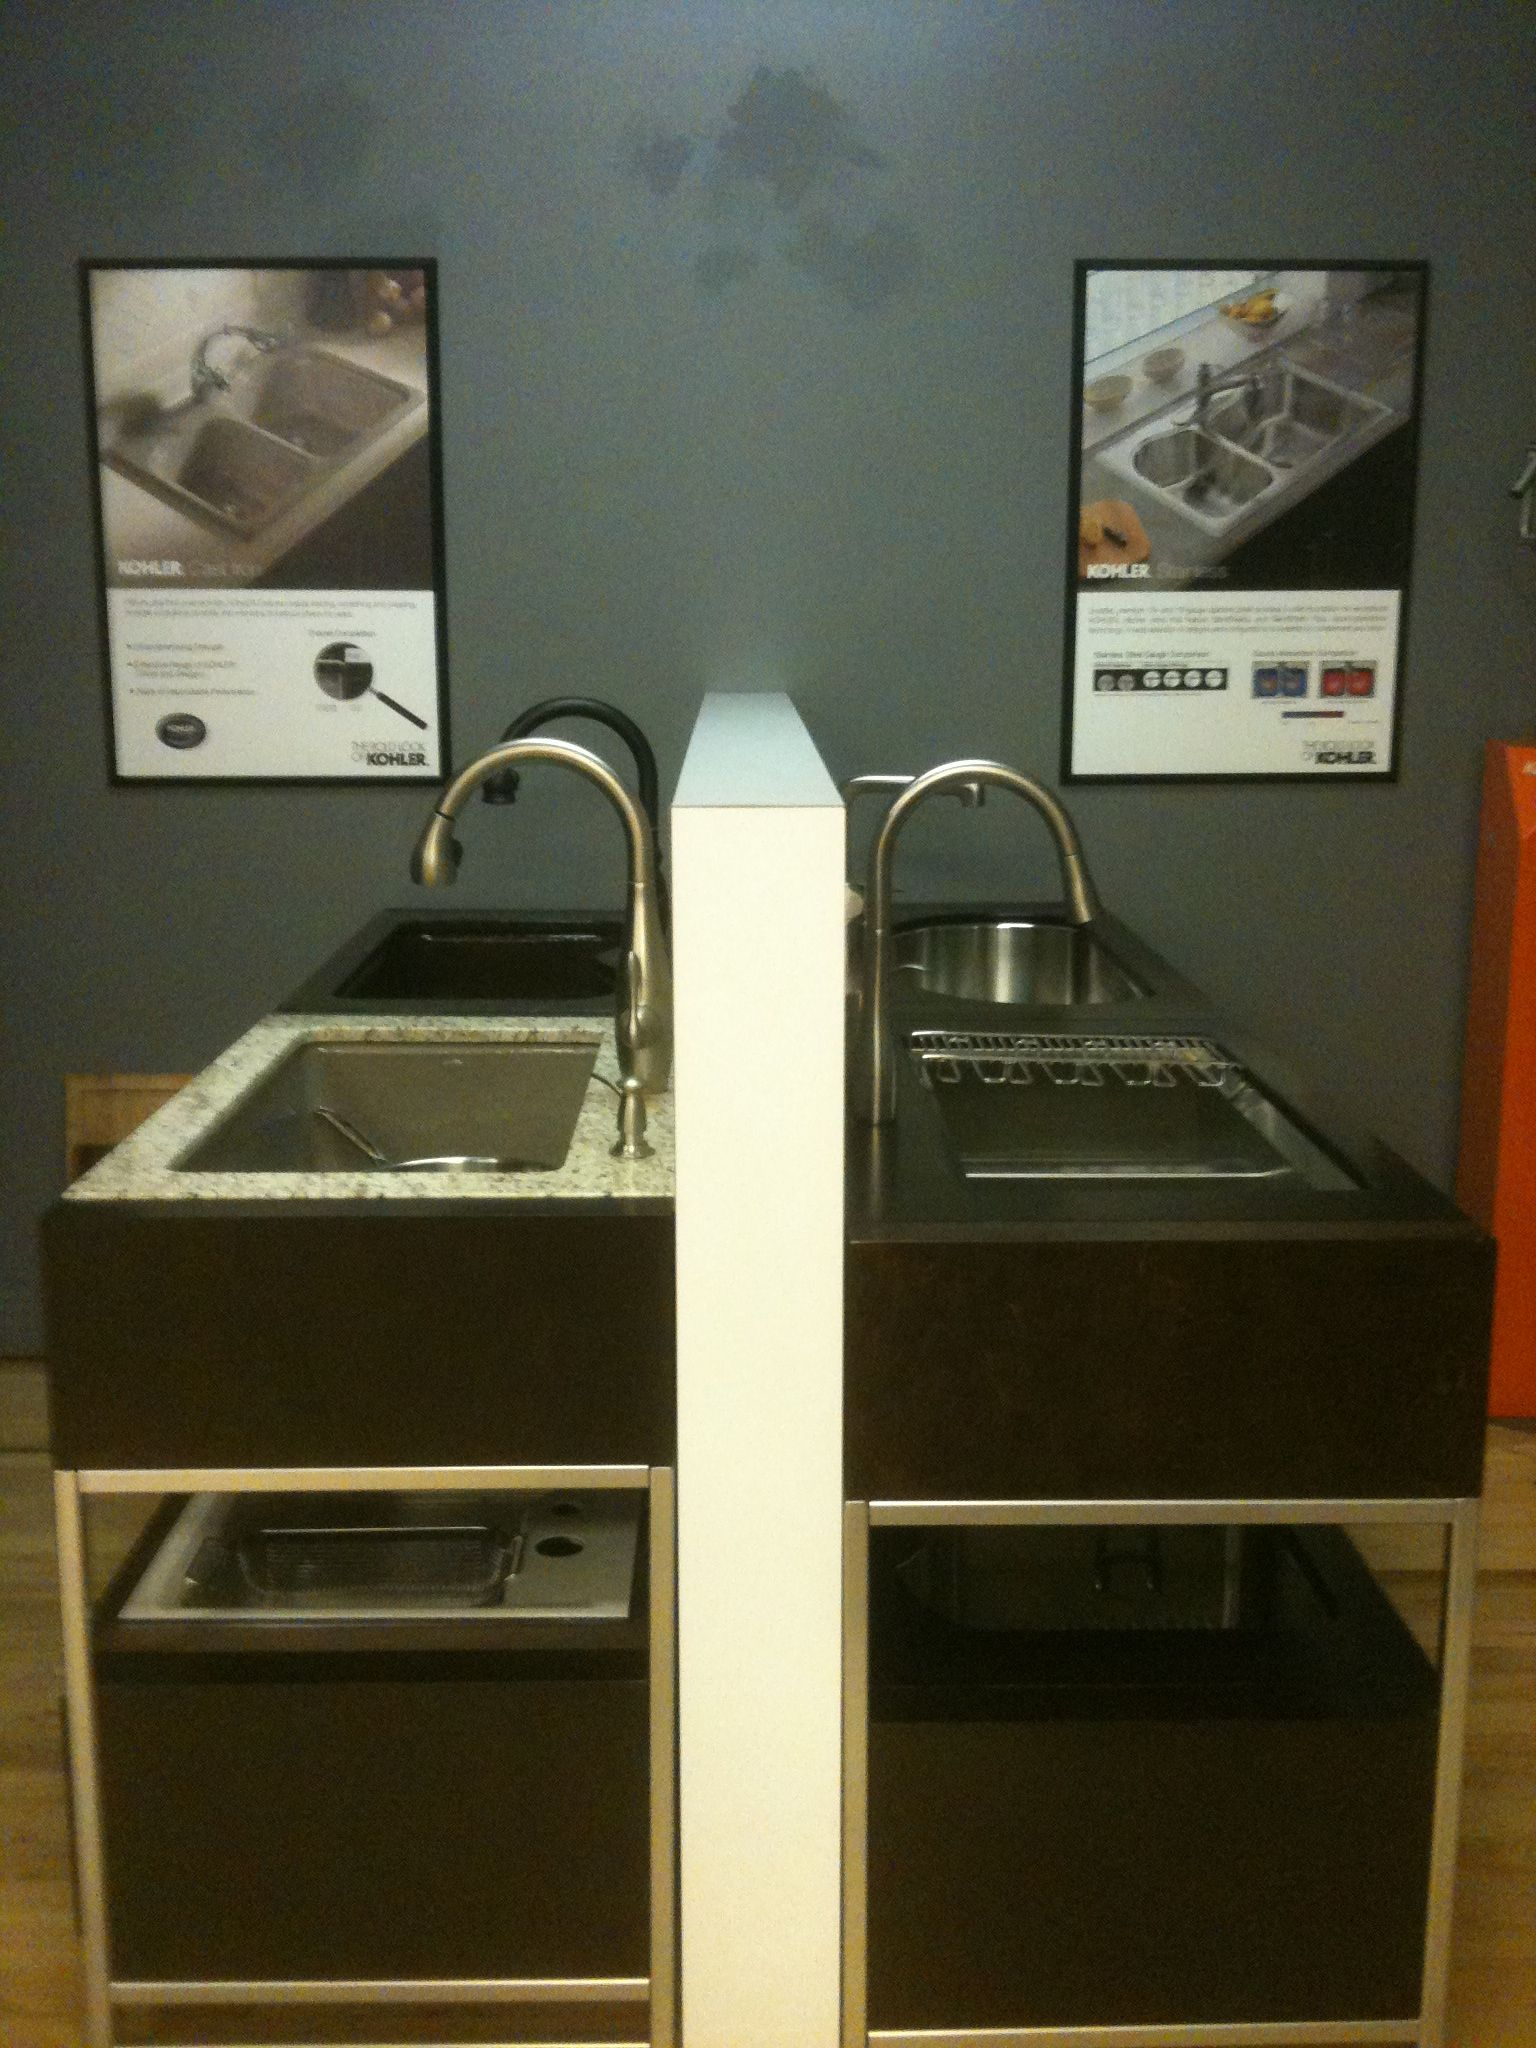 Kitchen Sinks Denver Comfort Mats Kohler Sink Displays Our Showroom